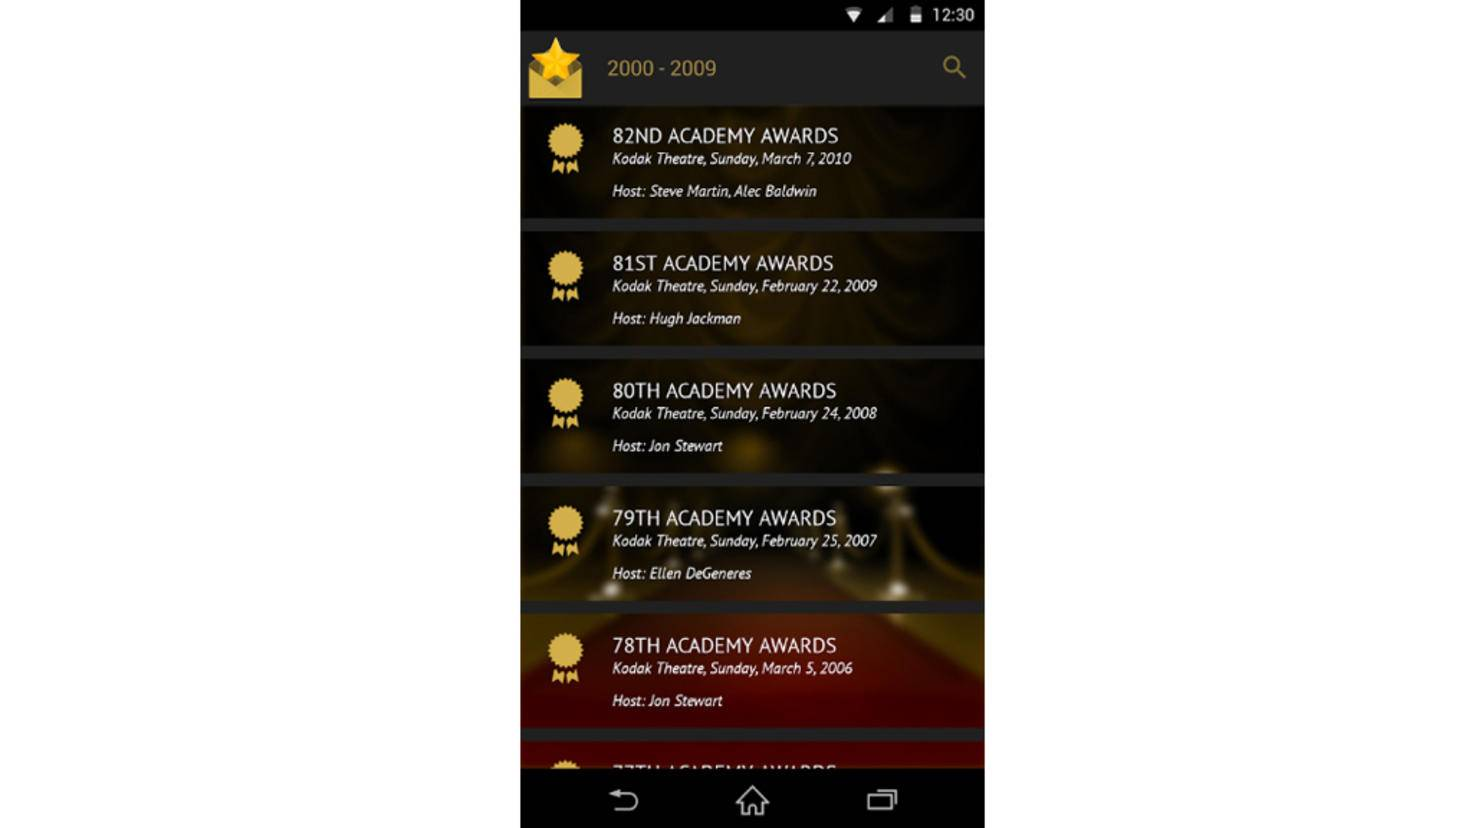 _Awards-Guide-The-Oscars_Google-Play_Redwind-Software